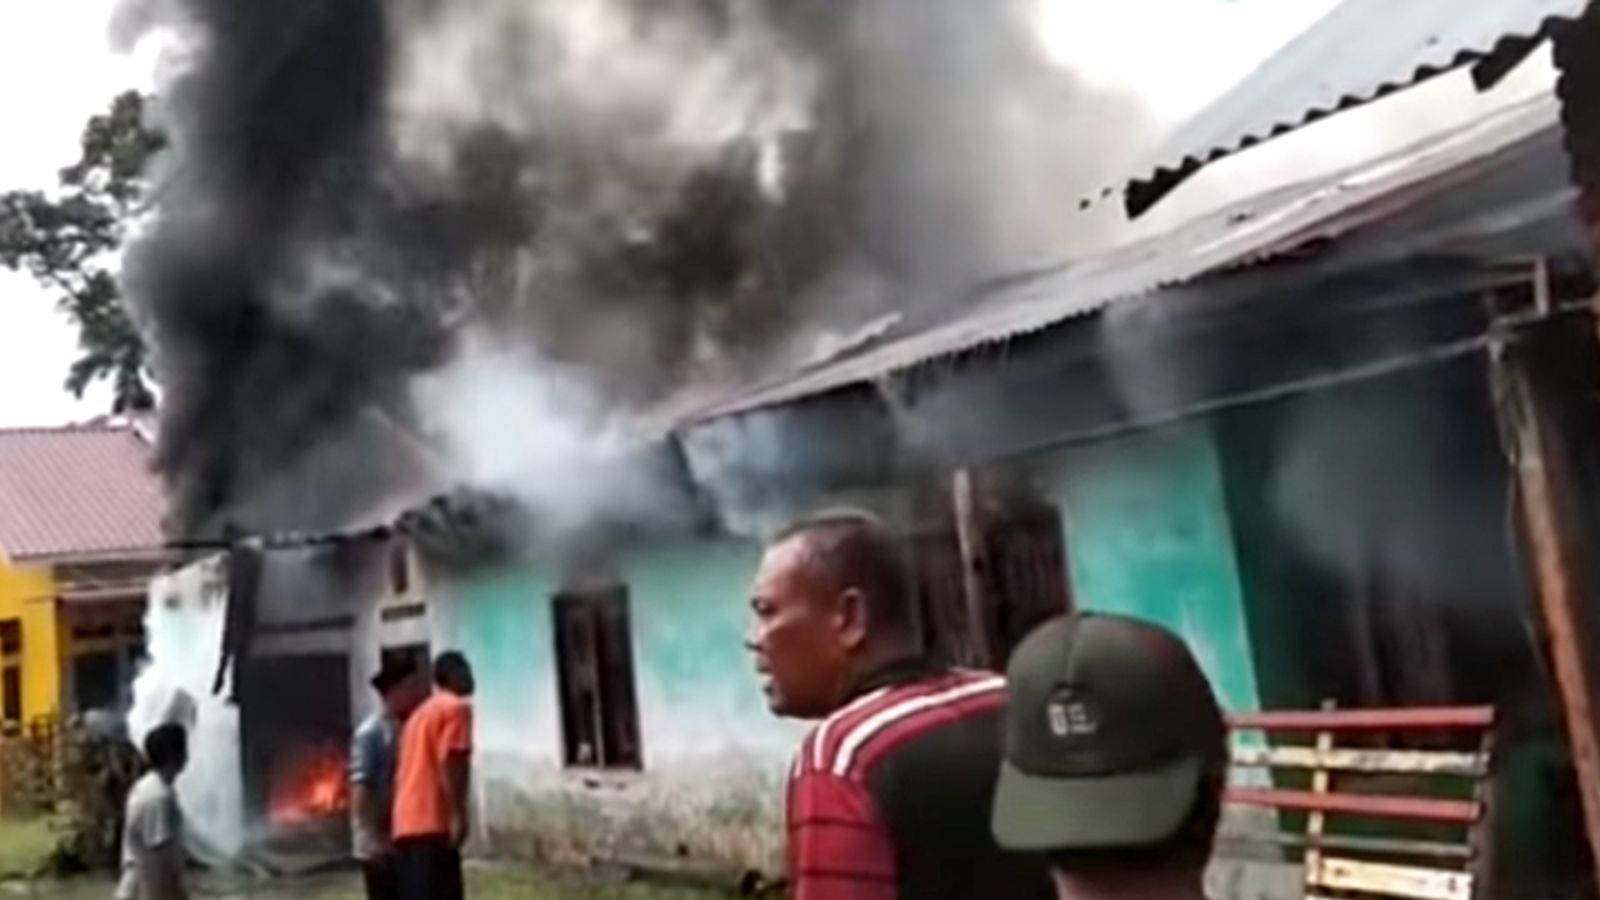 At least 30 dead in fire at home used as matchstick factory